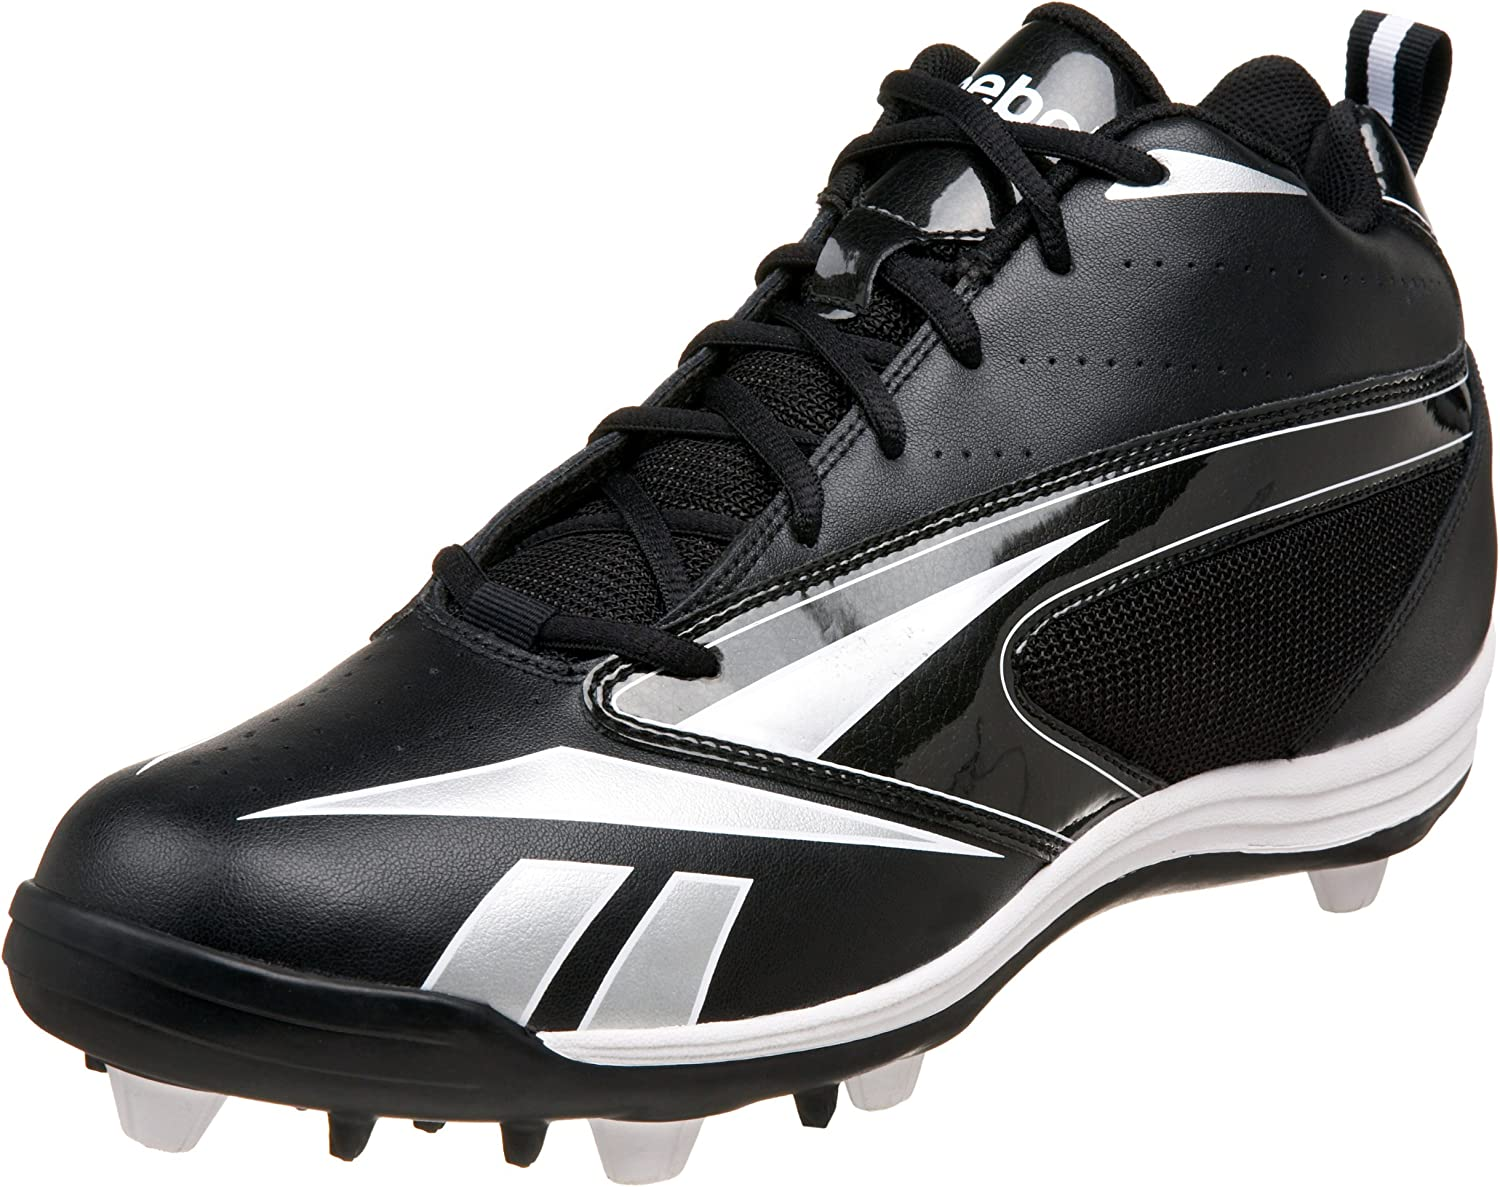 Reebok Men's Audible III Mr7 Football Cleat Black White